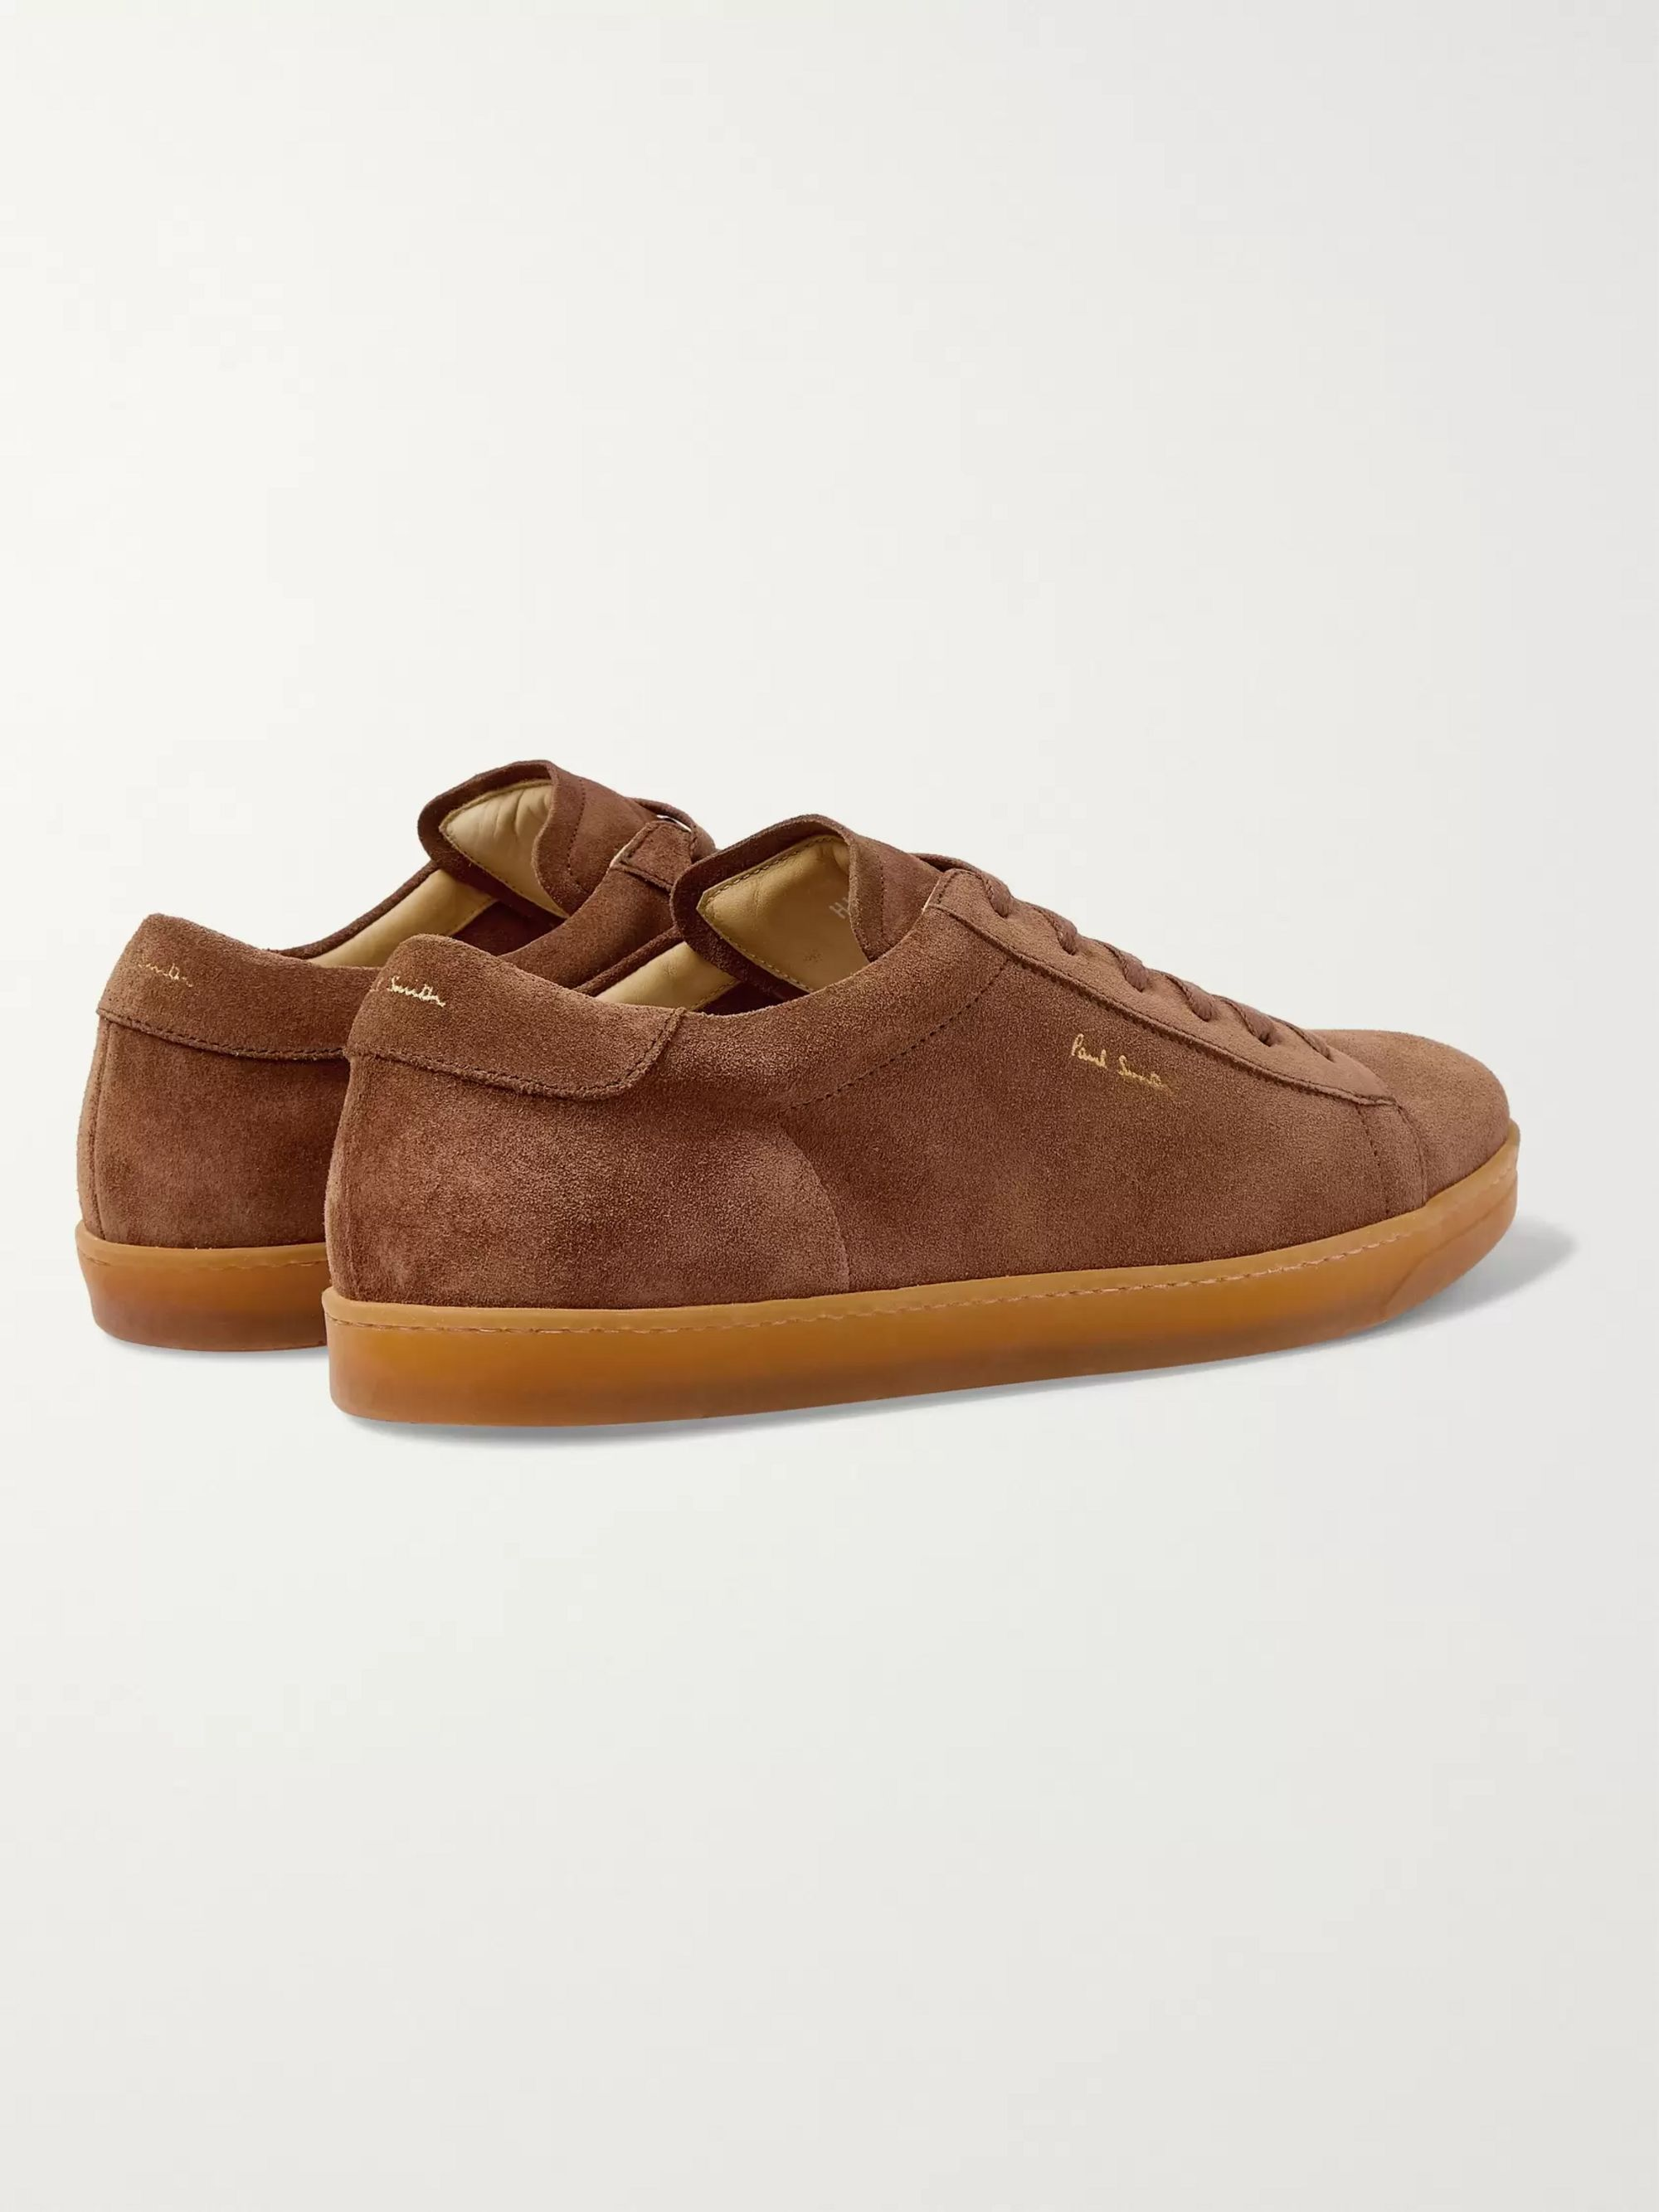 Paul Smith Huxley Suede Sneakers